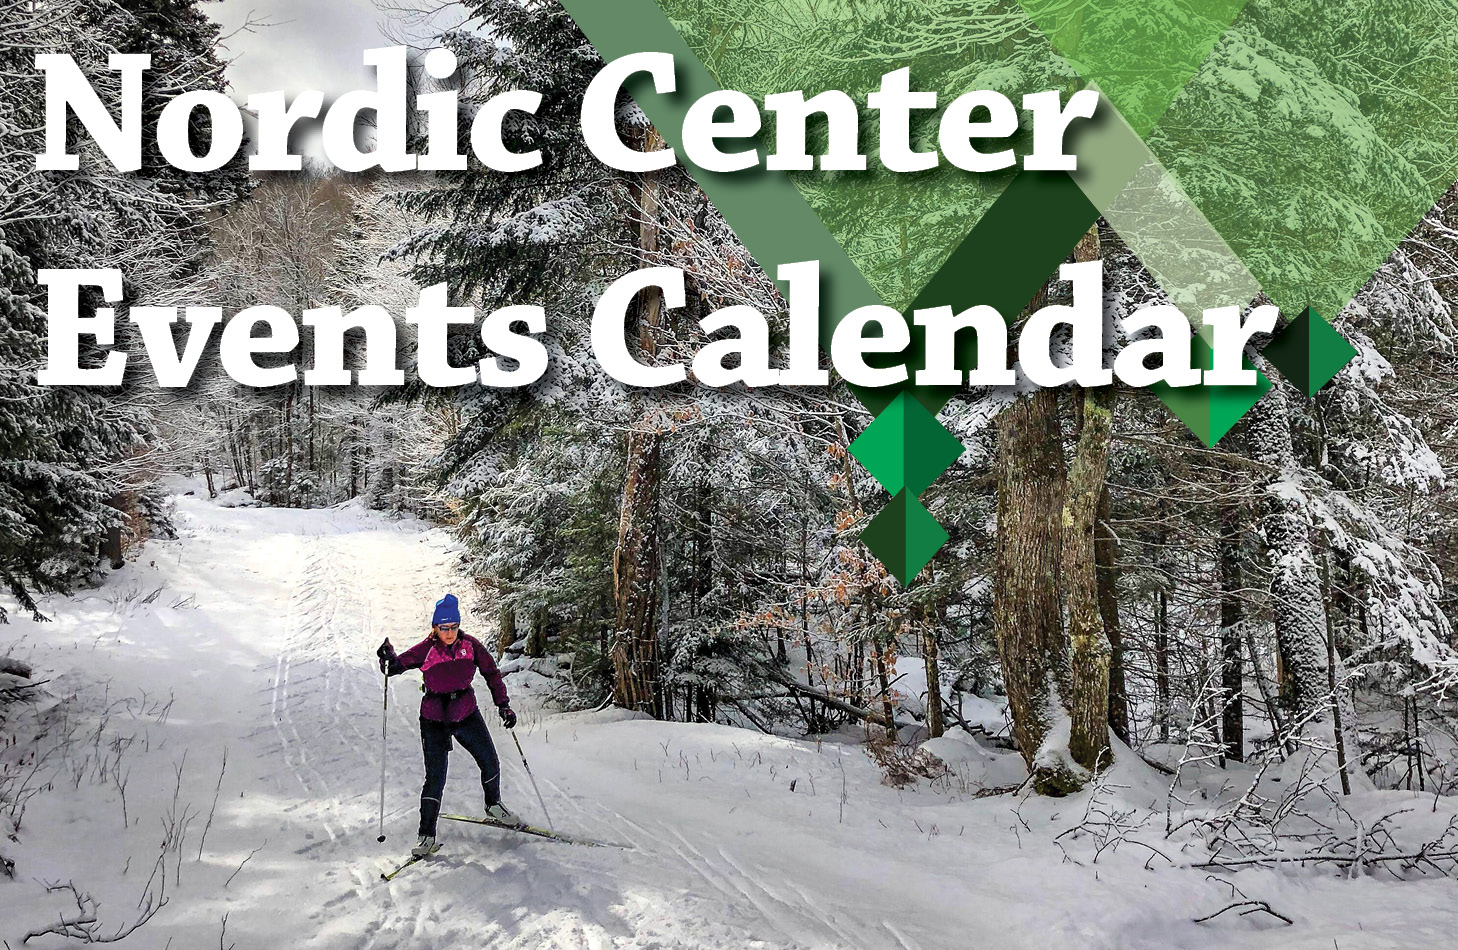 Nordic Center Events Calendar